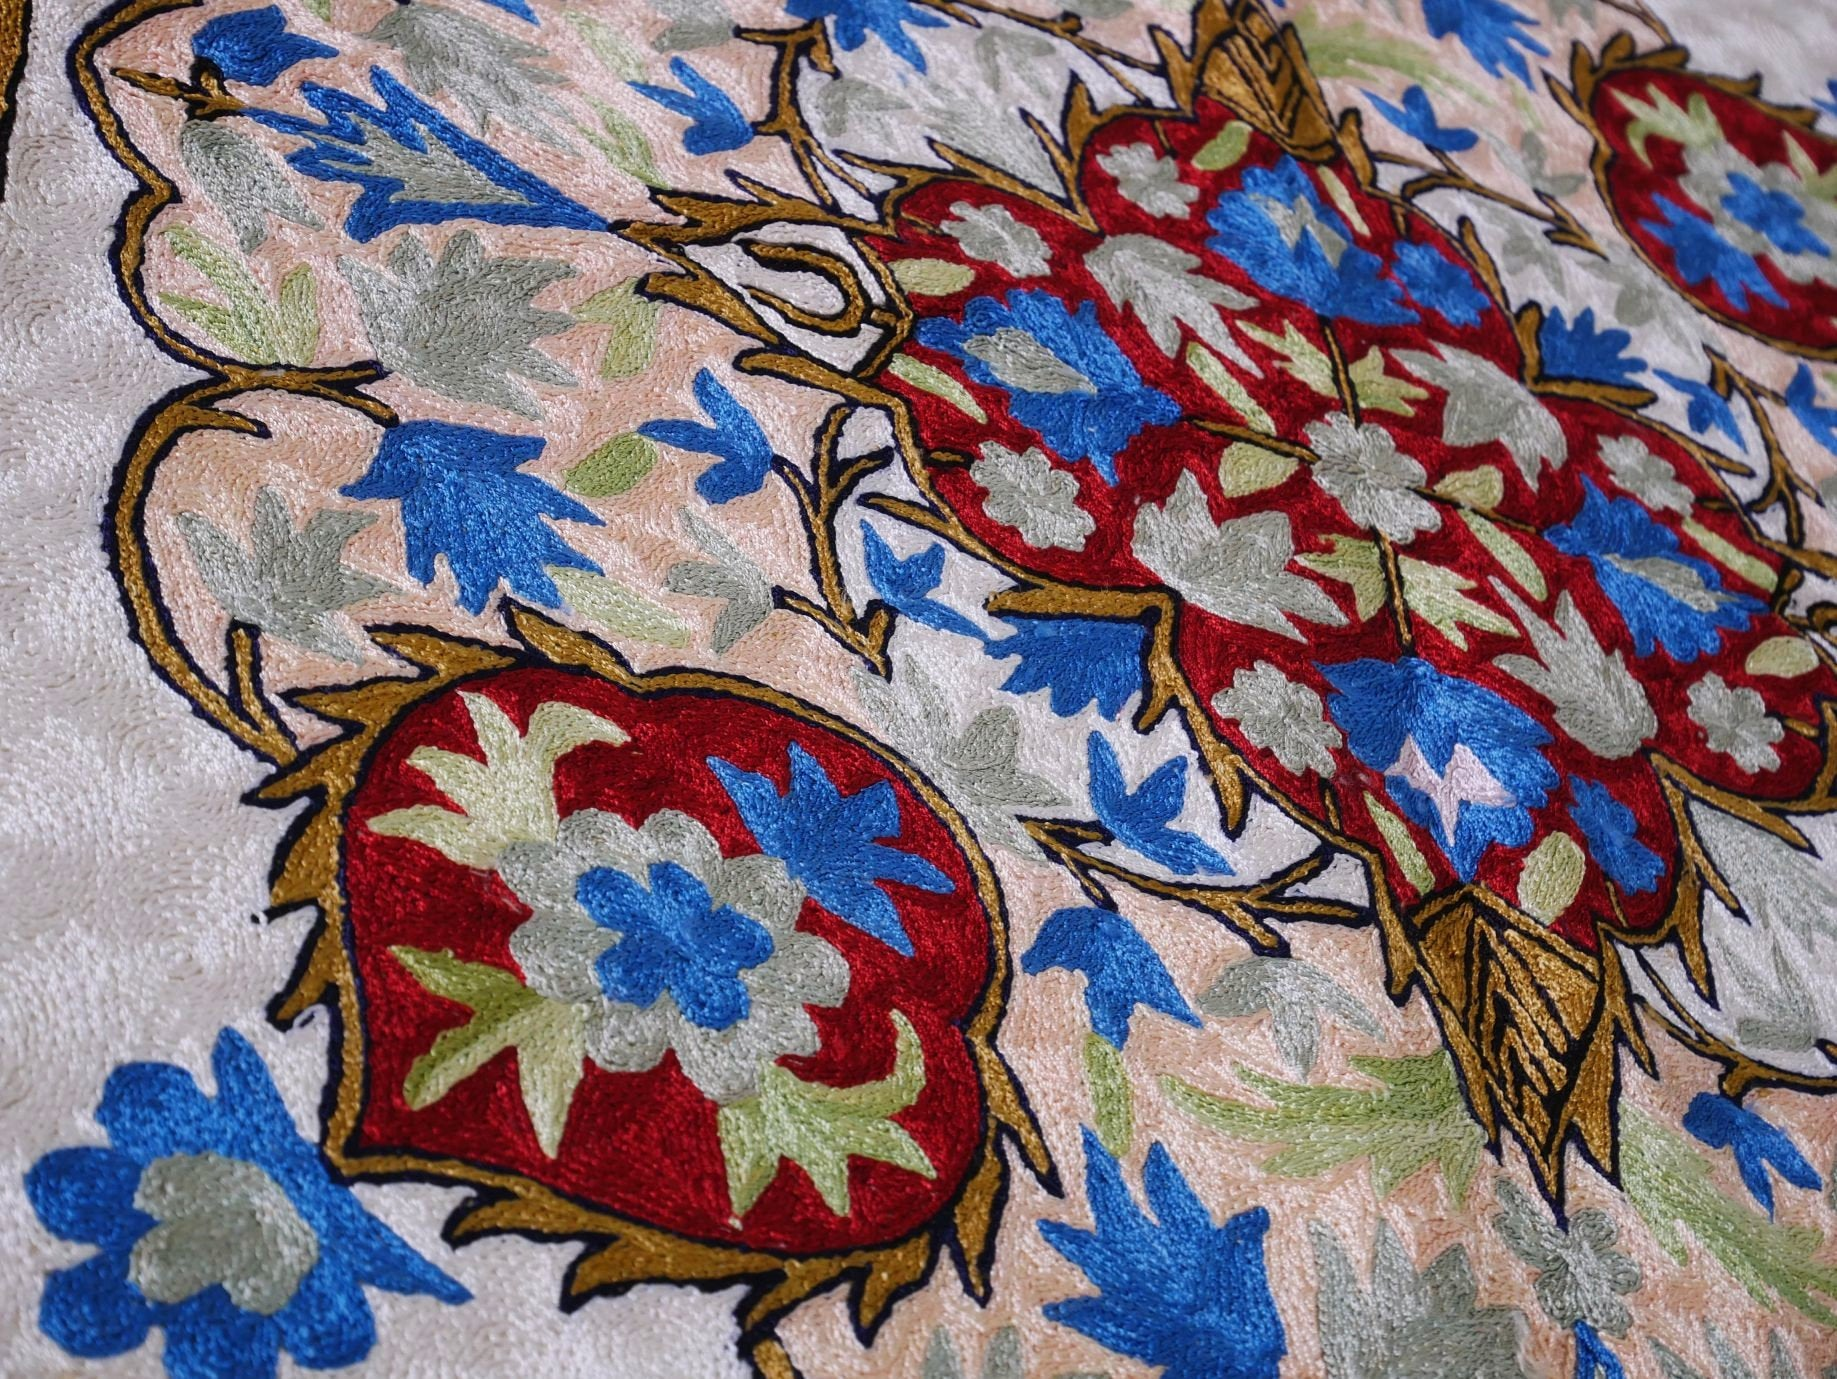 Kashmiri silk rug, area rug, boho rug 3 x 5 decorative hand made rug, bohemian home decor